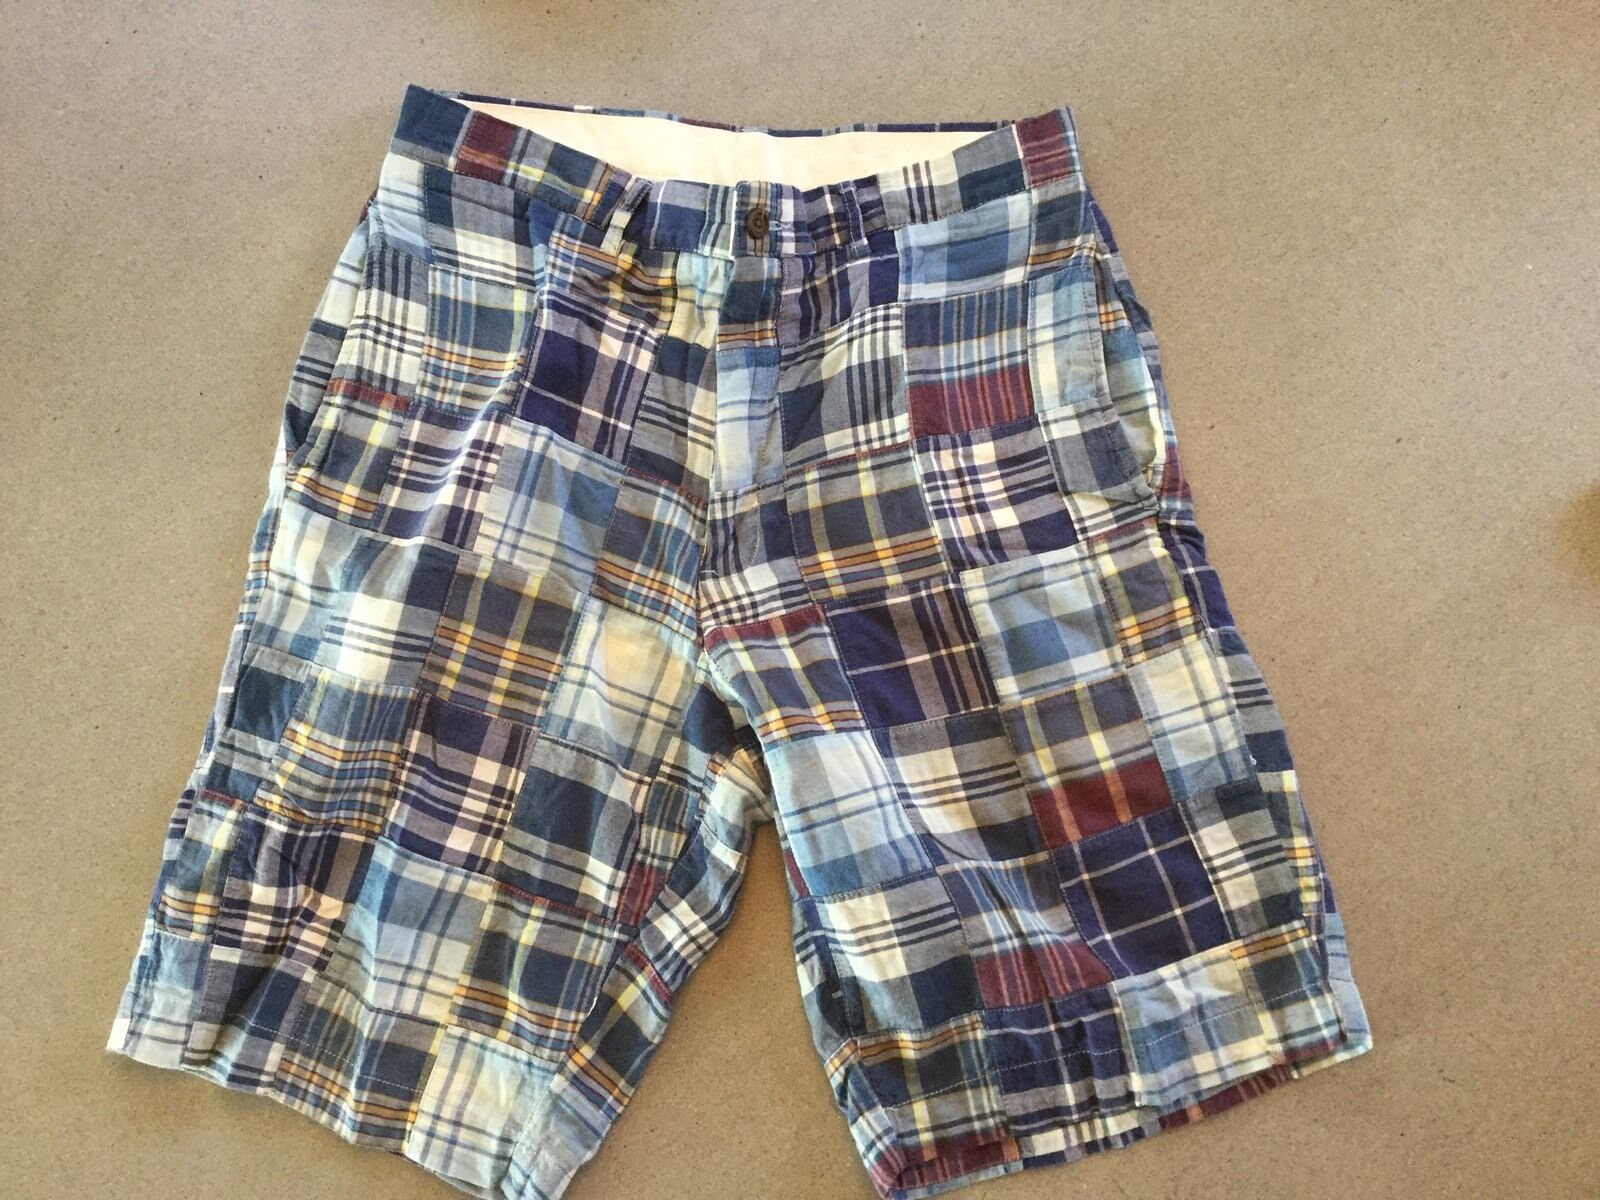 POLO-RALPH LAUREN Patchwork Plaid Madras Shorts Size 32